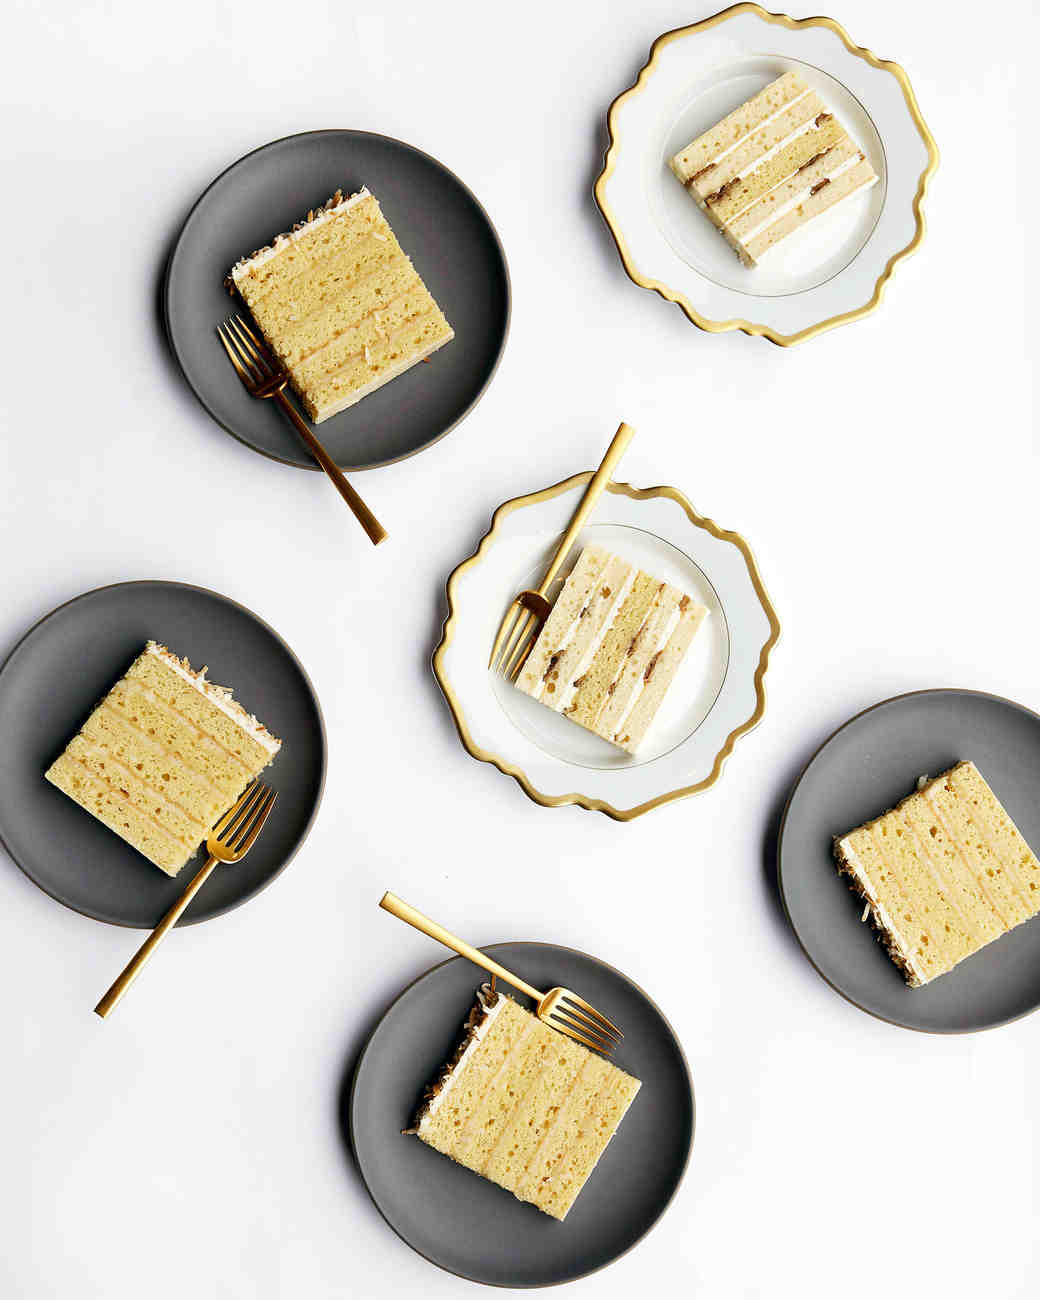 Wedding Cake and Gold-Rimmed Wedding Plates and Flatware